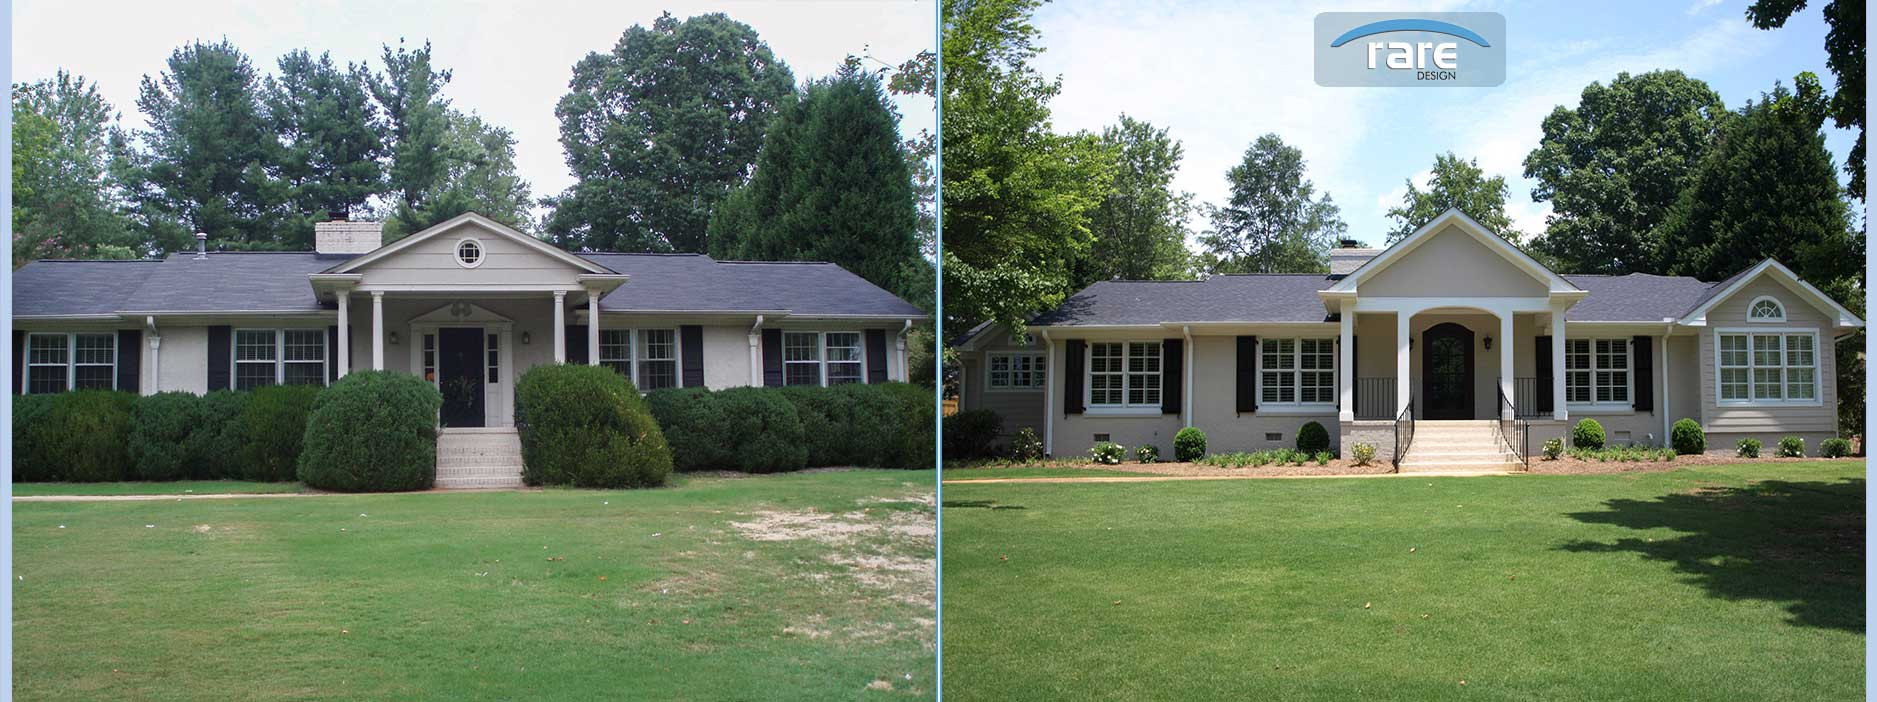 greenville home remodeling - Before And After Home Remodel